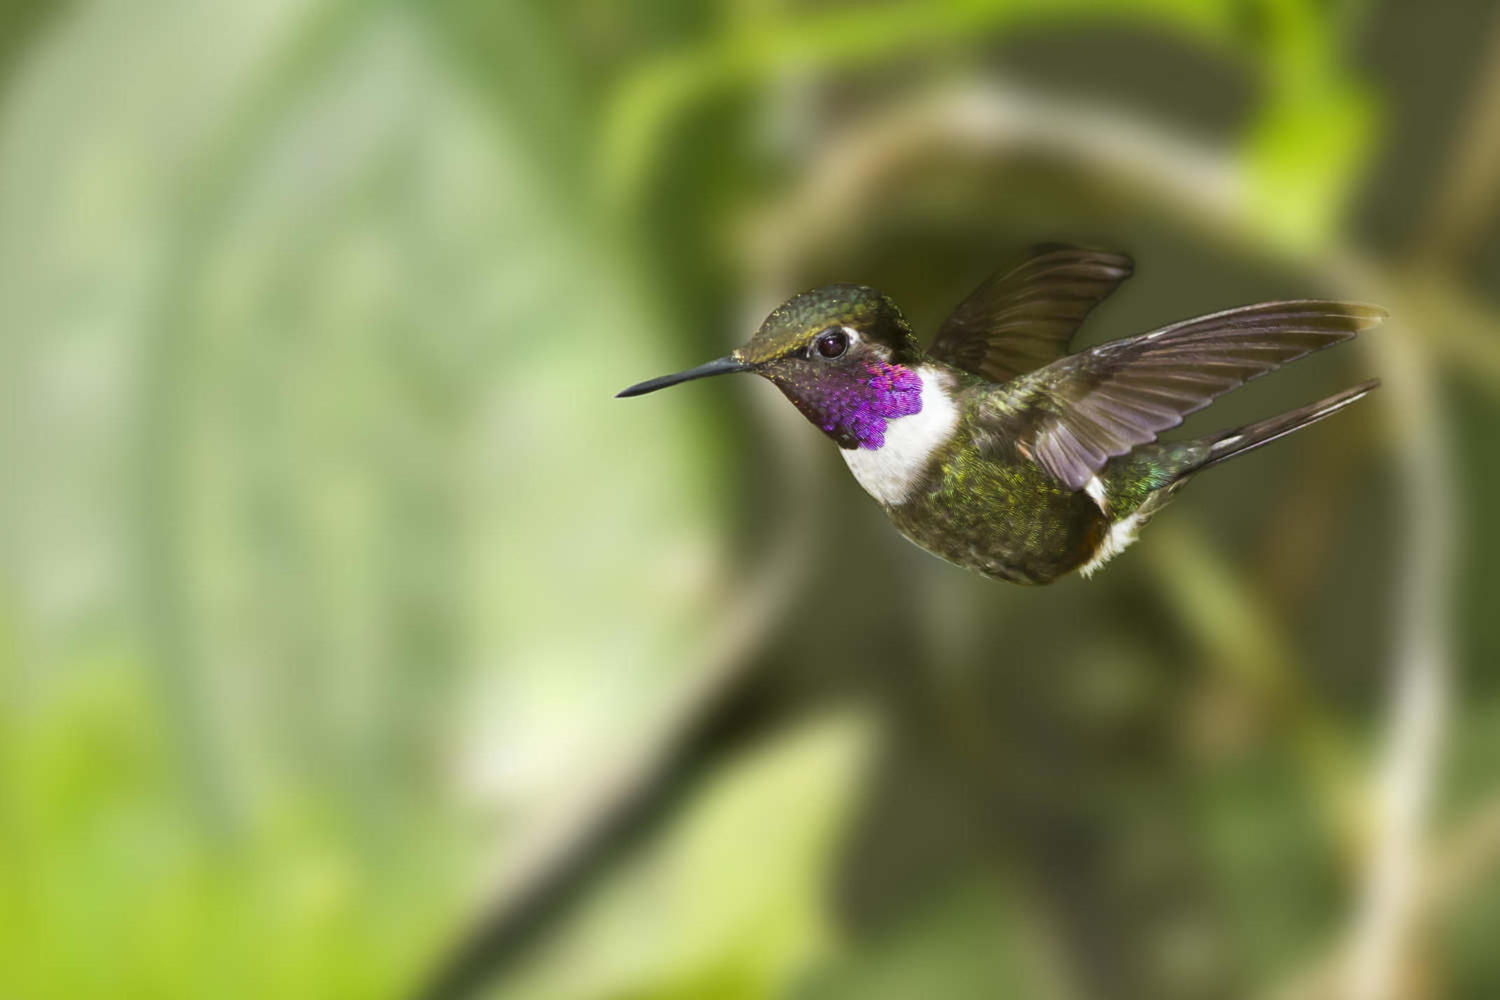 Male Purple-throated Woodstar Hummingbird in flight in Ecuador cloudforest